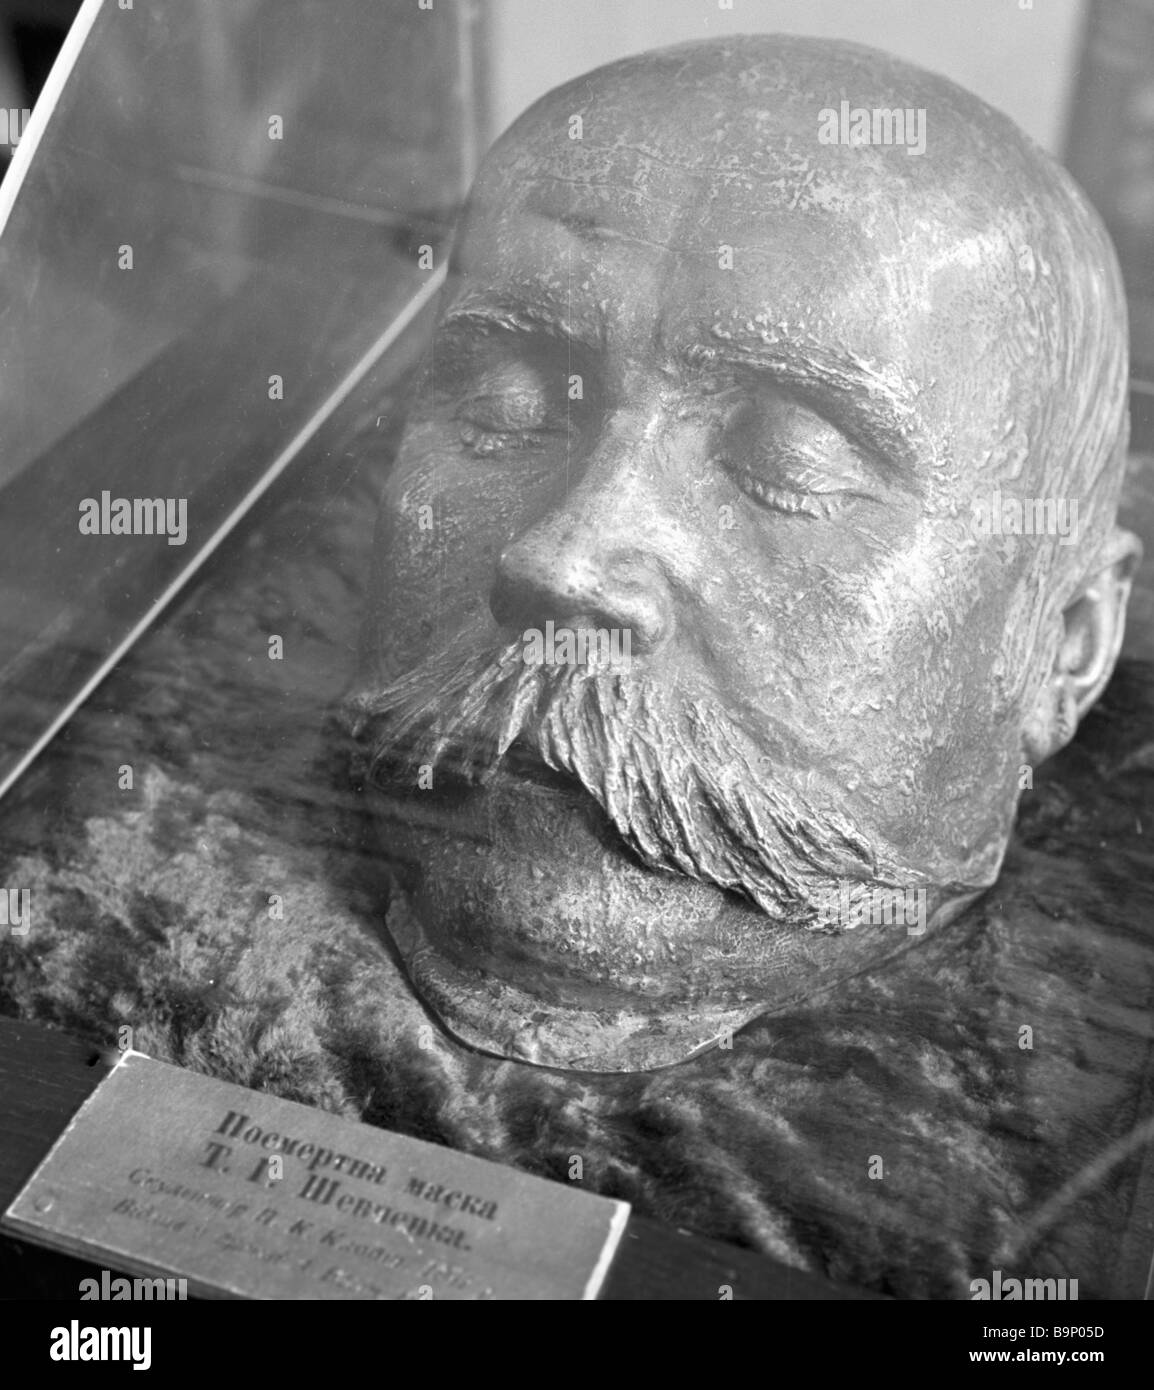 The death mask of Taras Shevchenko by famous sculptor Pyotr Klodt - Stock Image